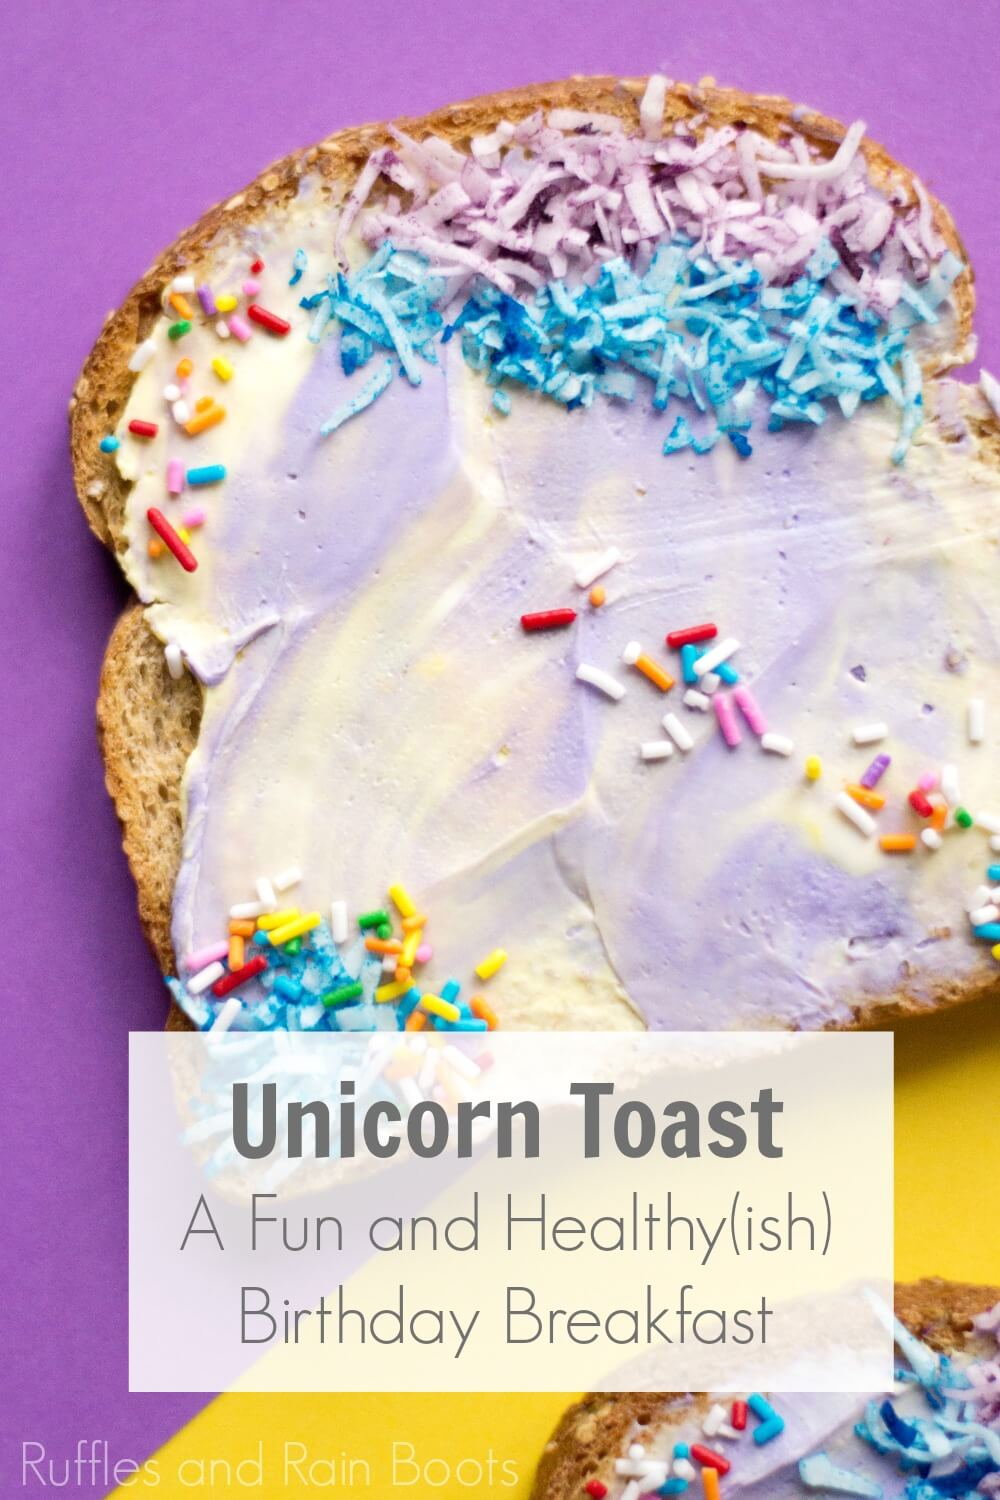 colorful healthy breakfast on purple background with text unicorn toast a fun and healthy breakfast